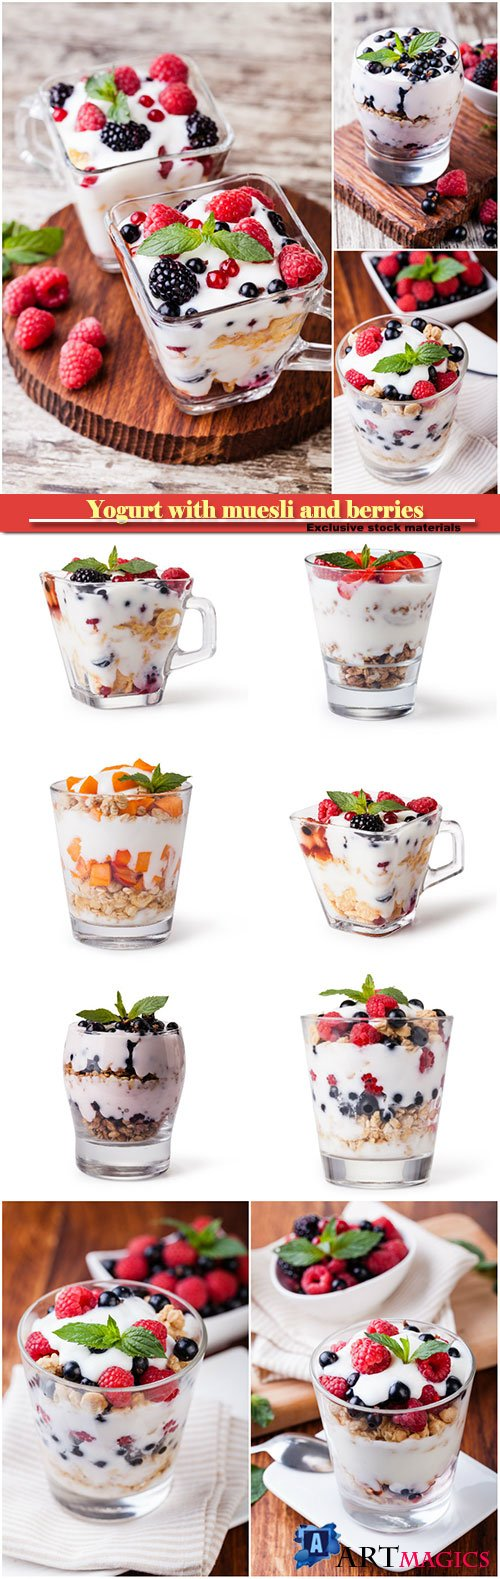 Yogurt with muesli and berries #2